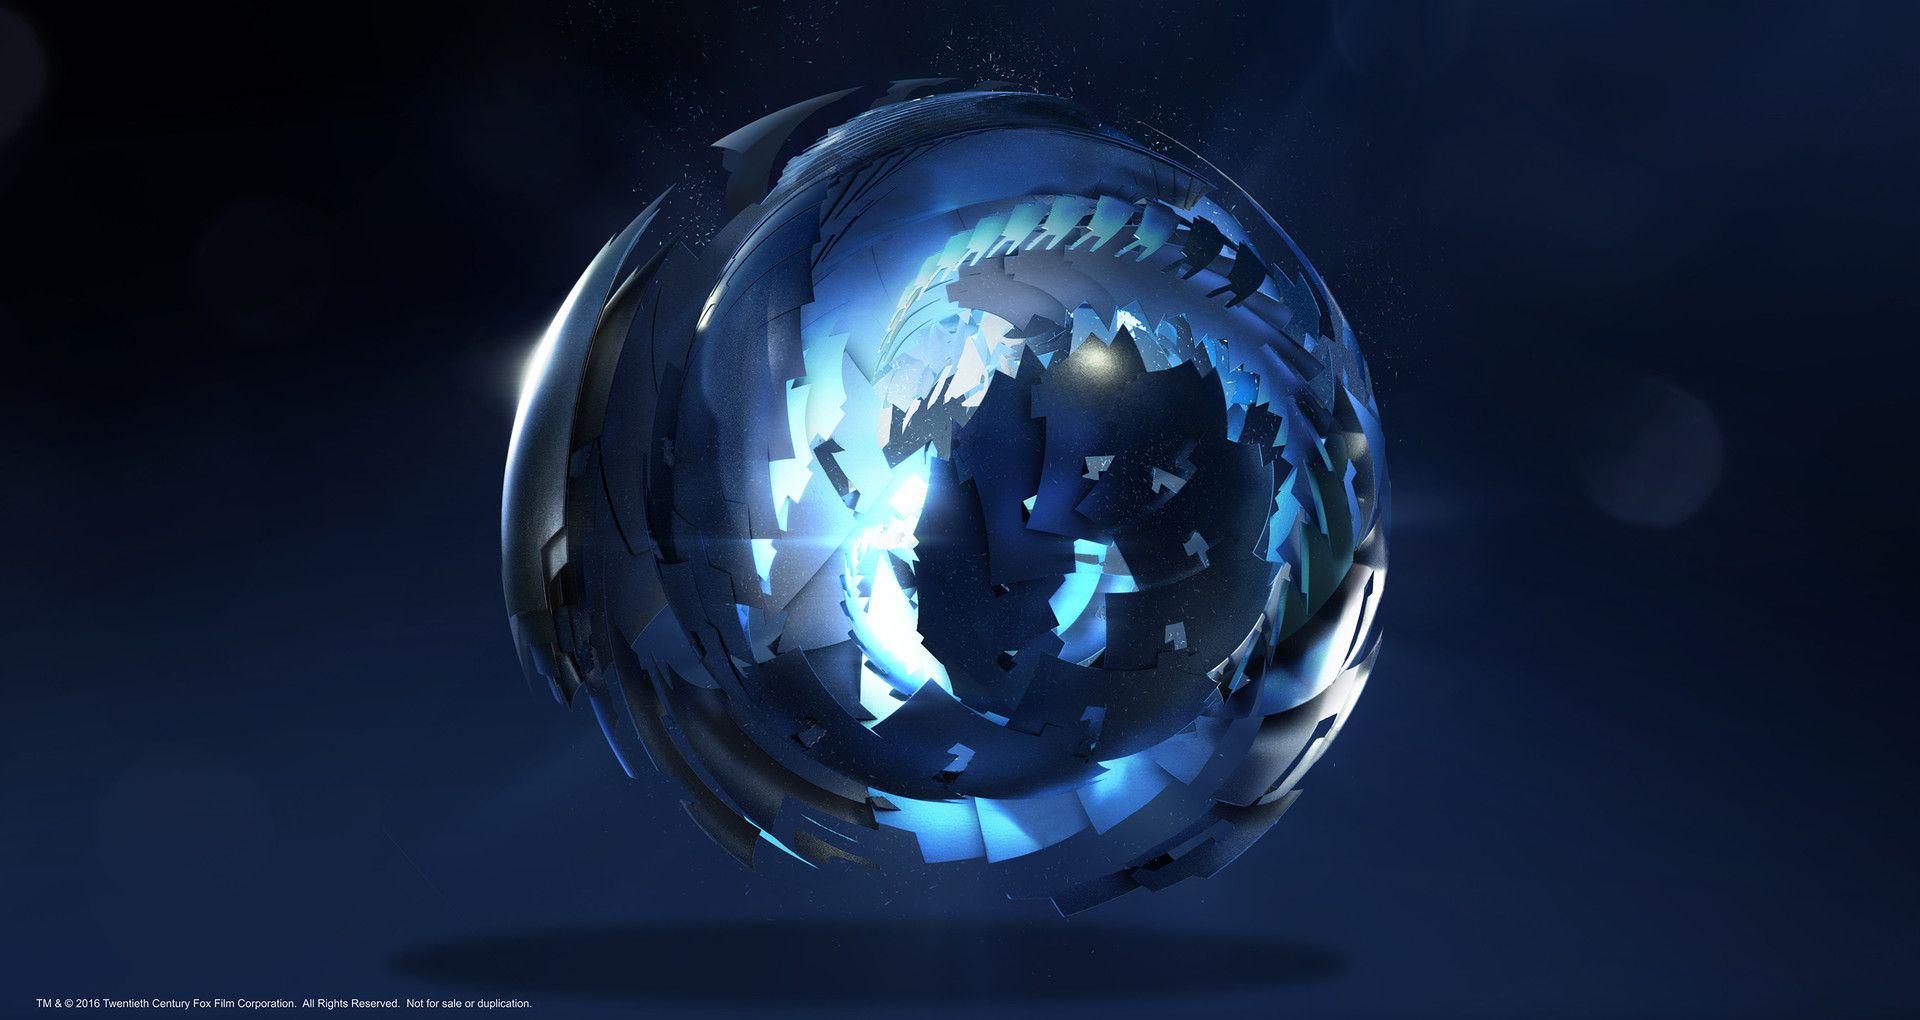 During the production phase there was a moment in which the director wanted to develop the idea of the AI sphere opening and unfolding to reveal a more complex aspect of itself inside. 